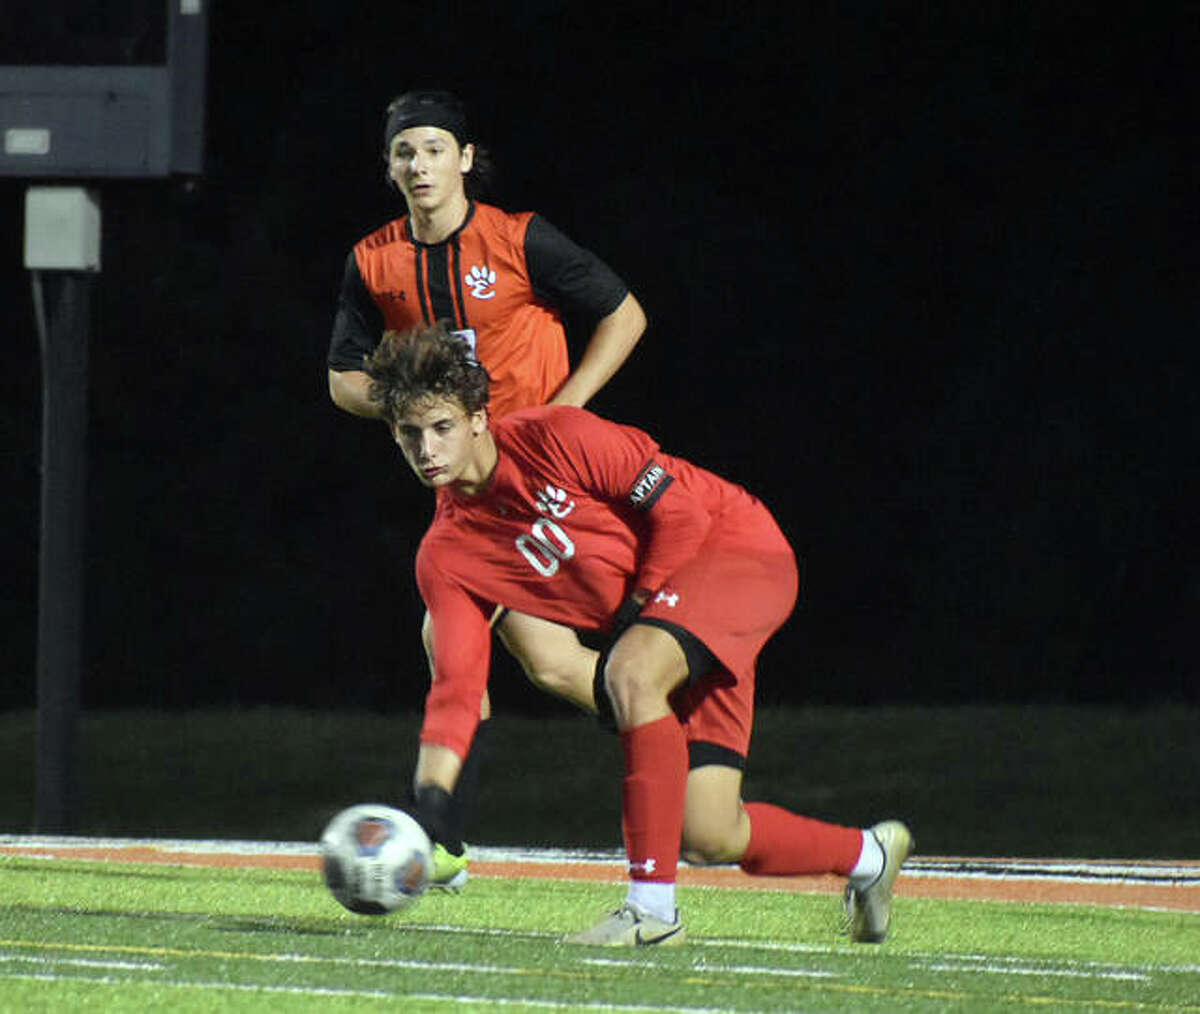 Edwardsville keeper Nathan Beck rolls a pass up the field against Belleville West during the first half on Thursday inside the District 7 Sports Complex.